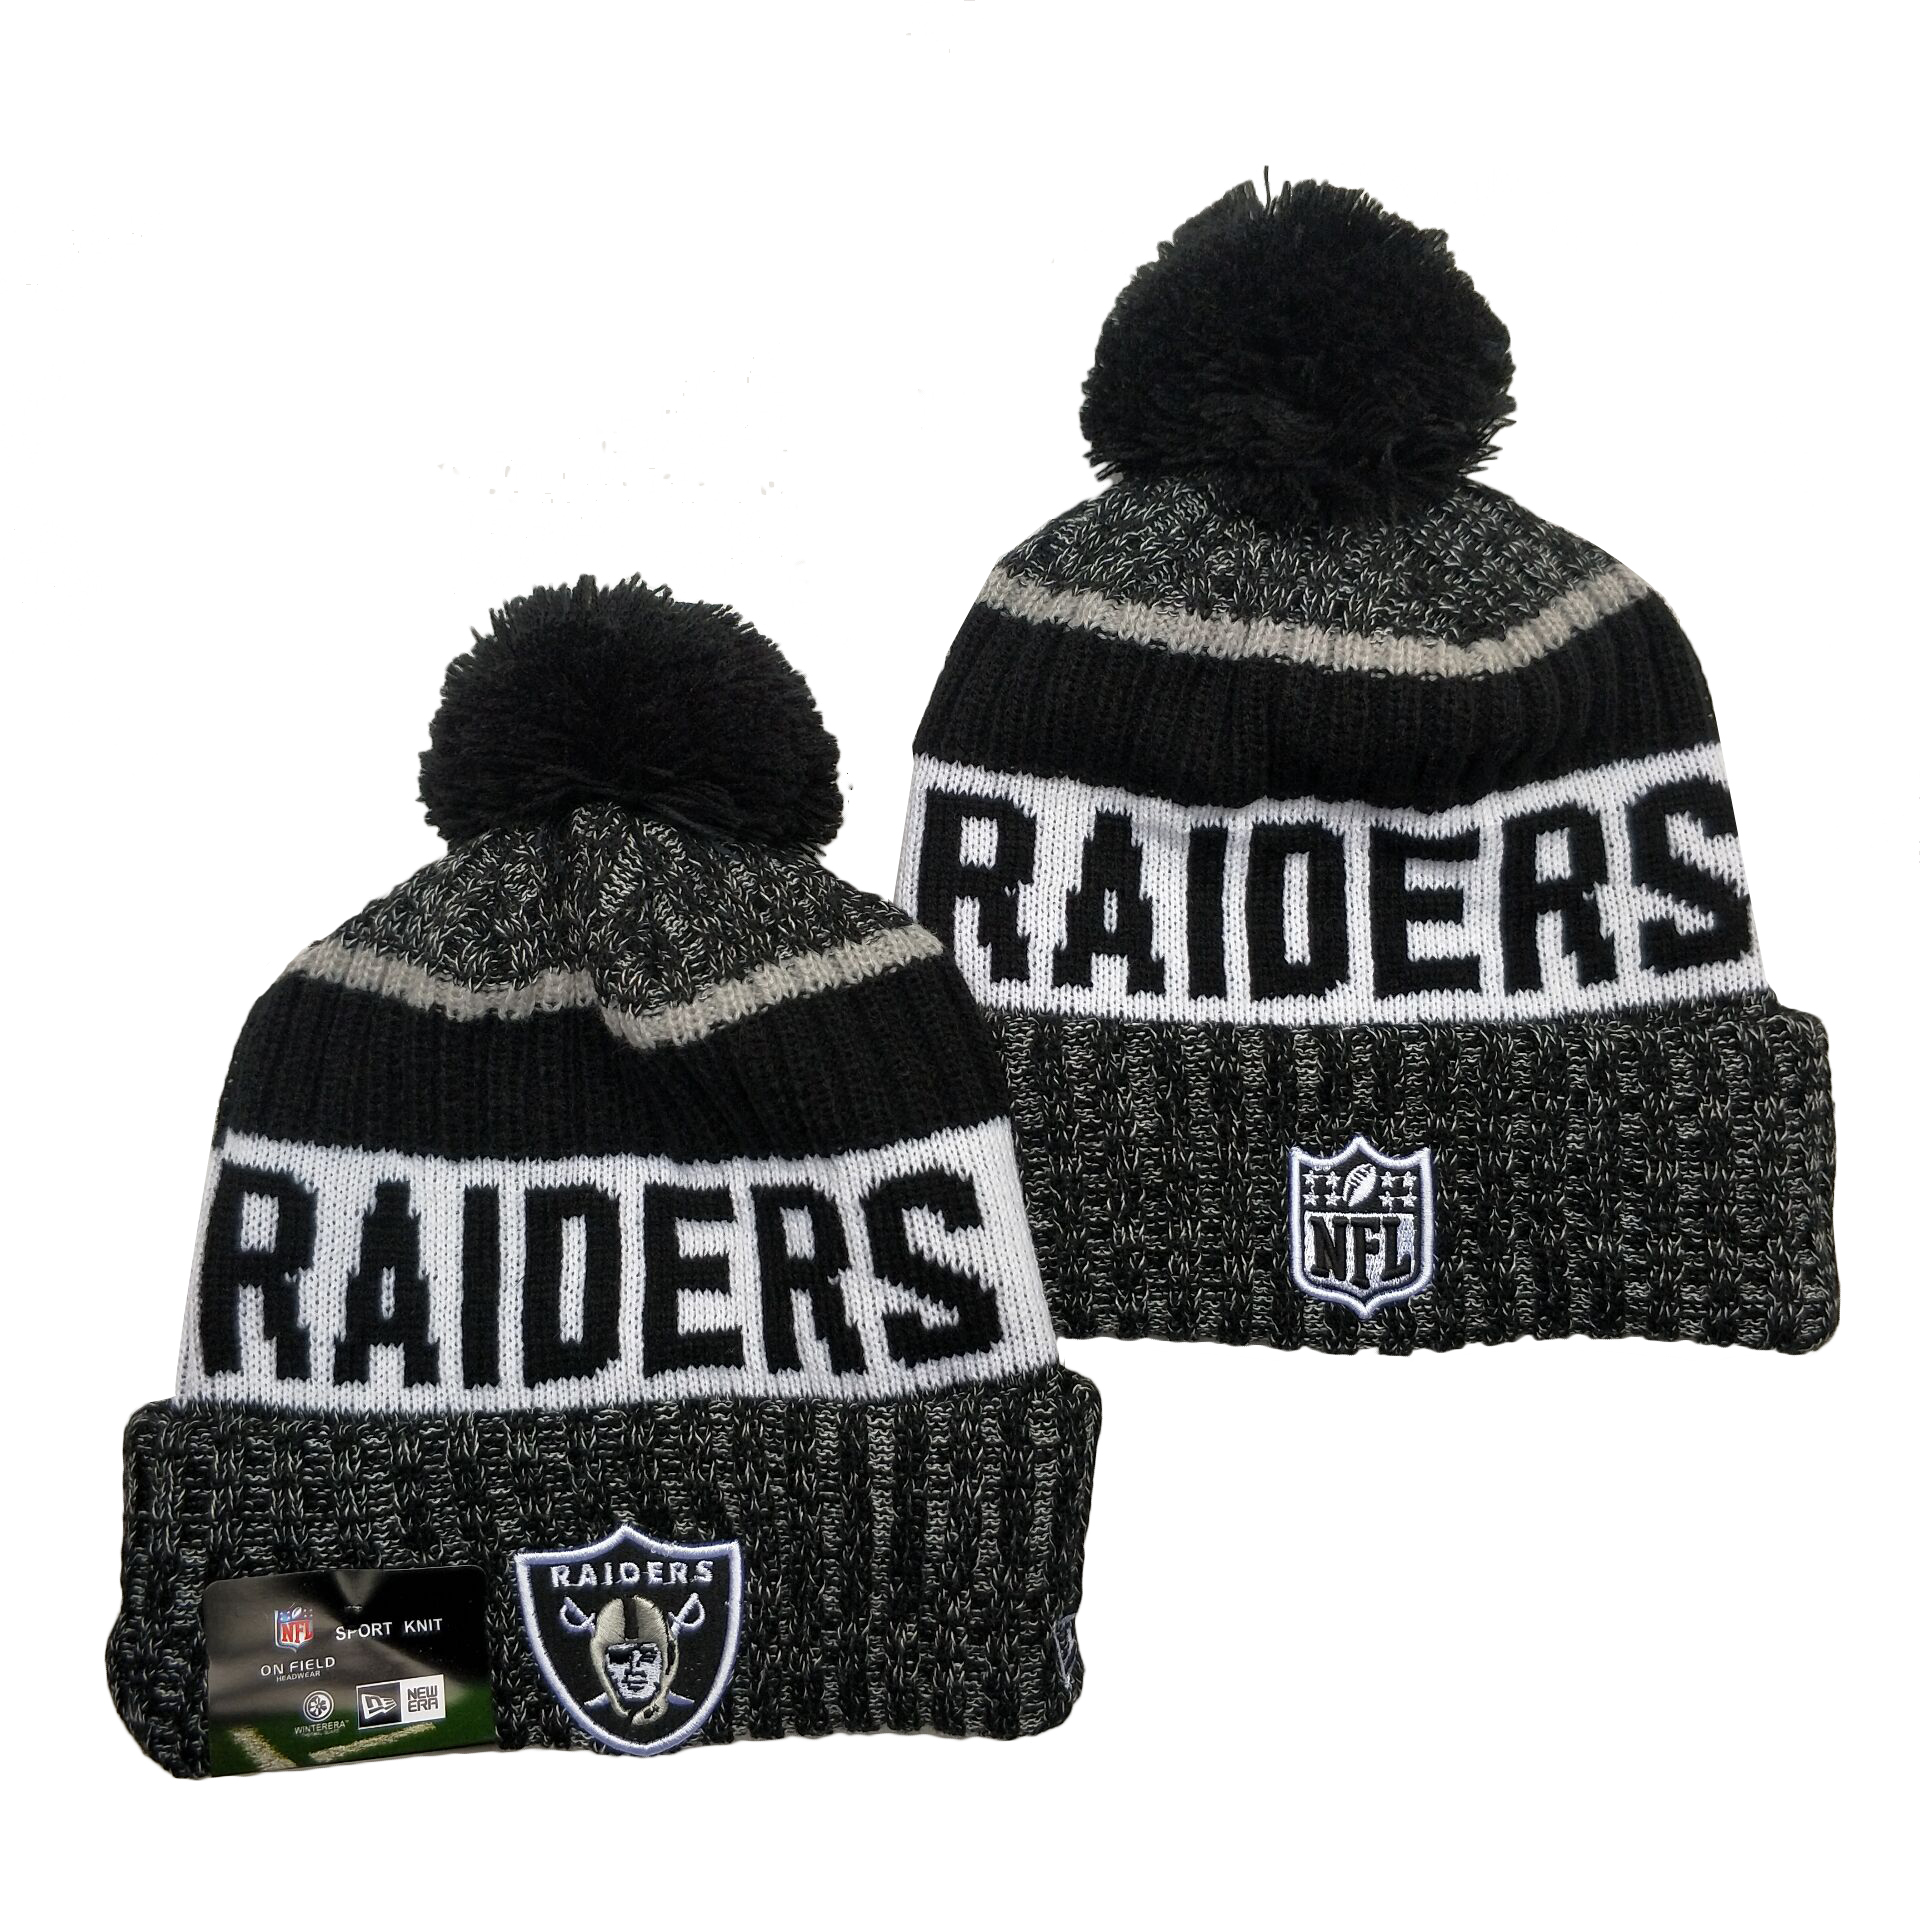 Las Vegas Raiders Knit Hats 078